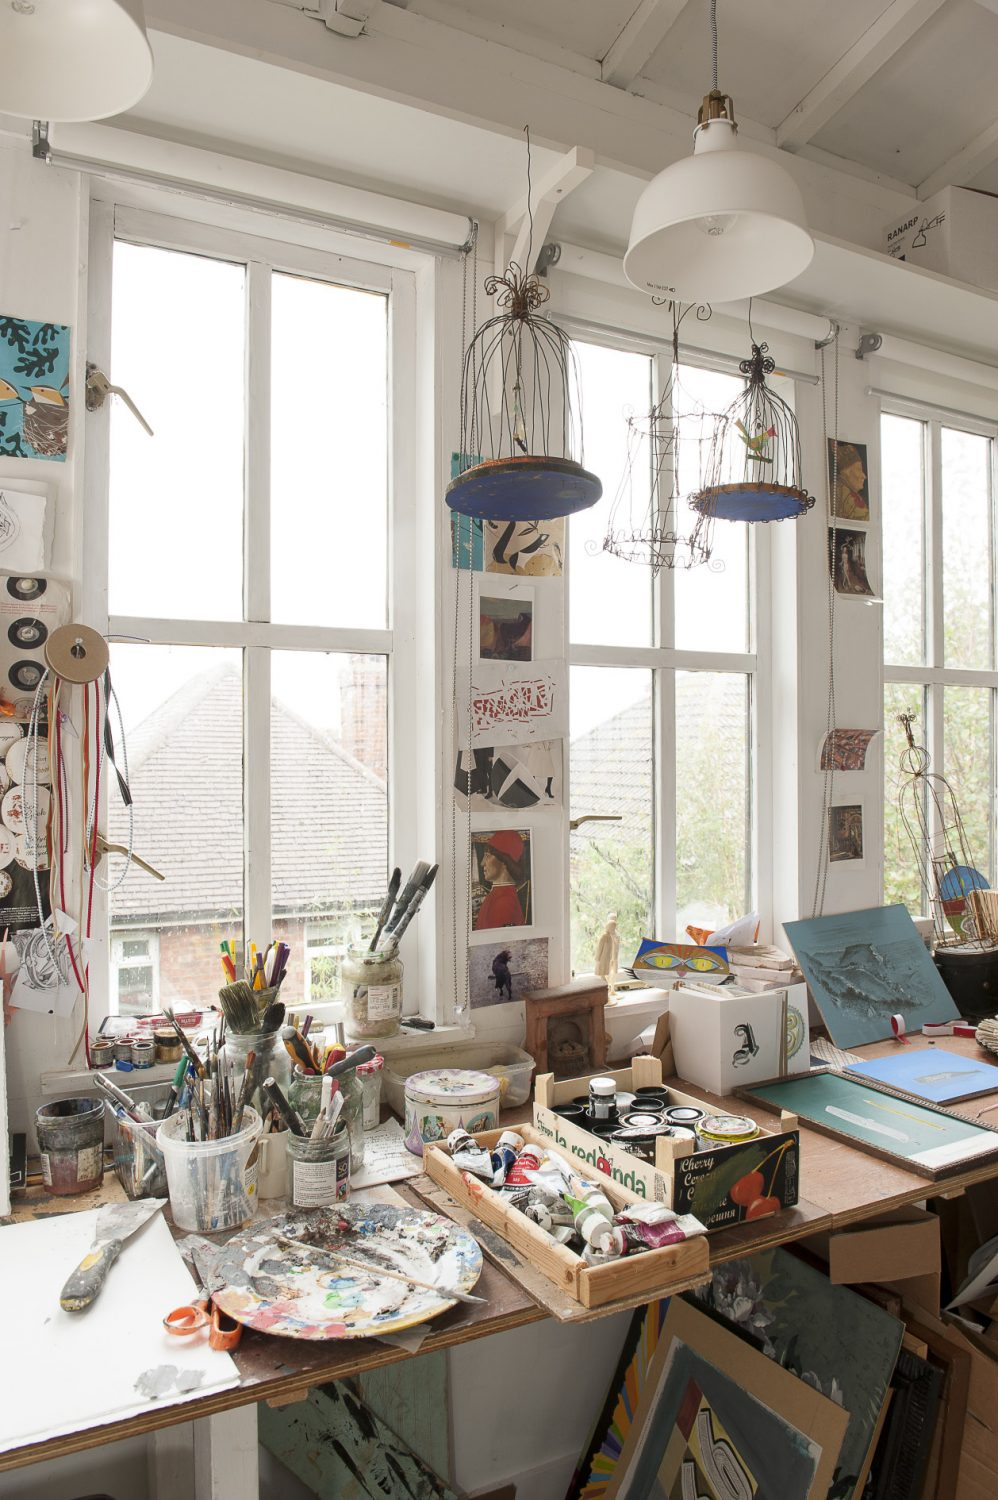 The studio is full of natural light